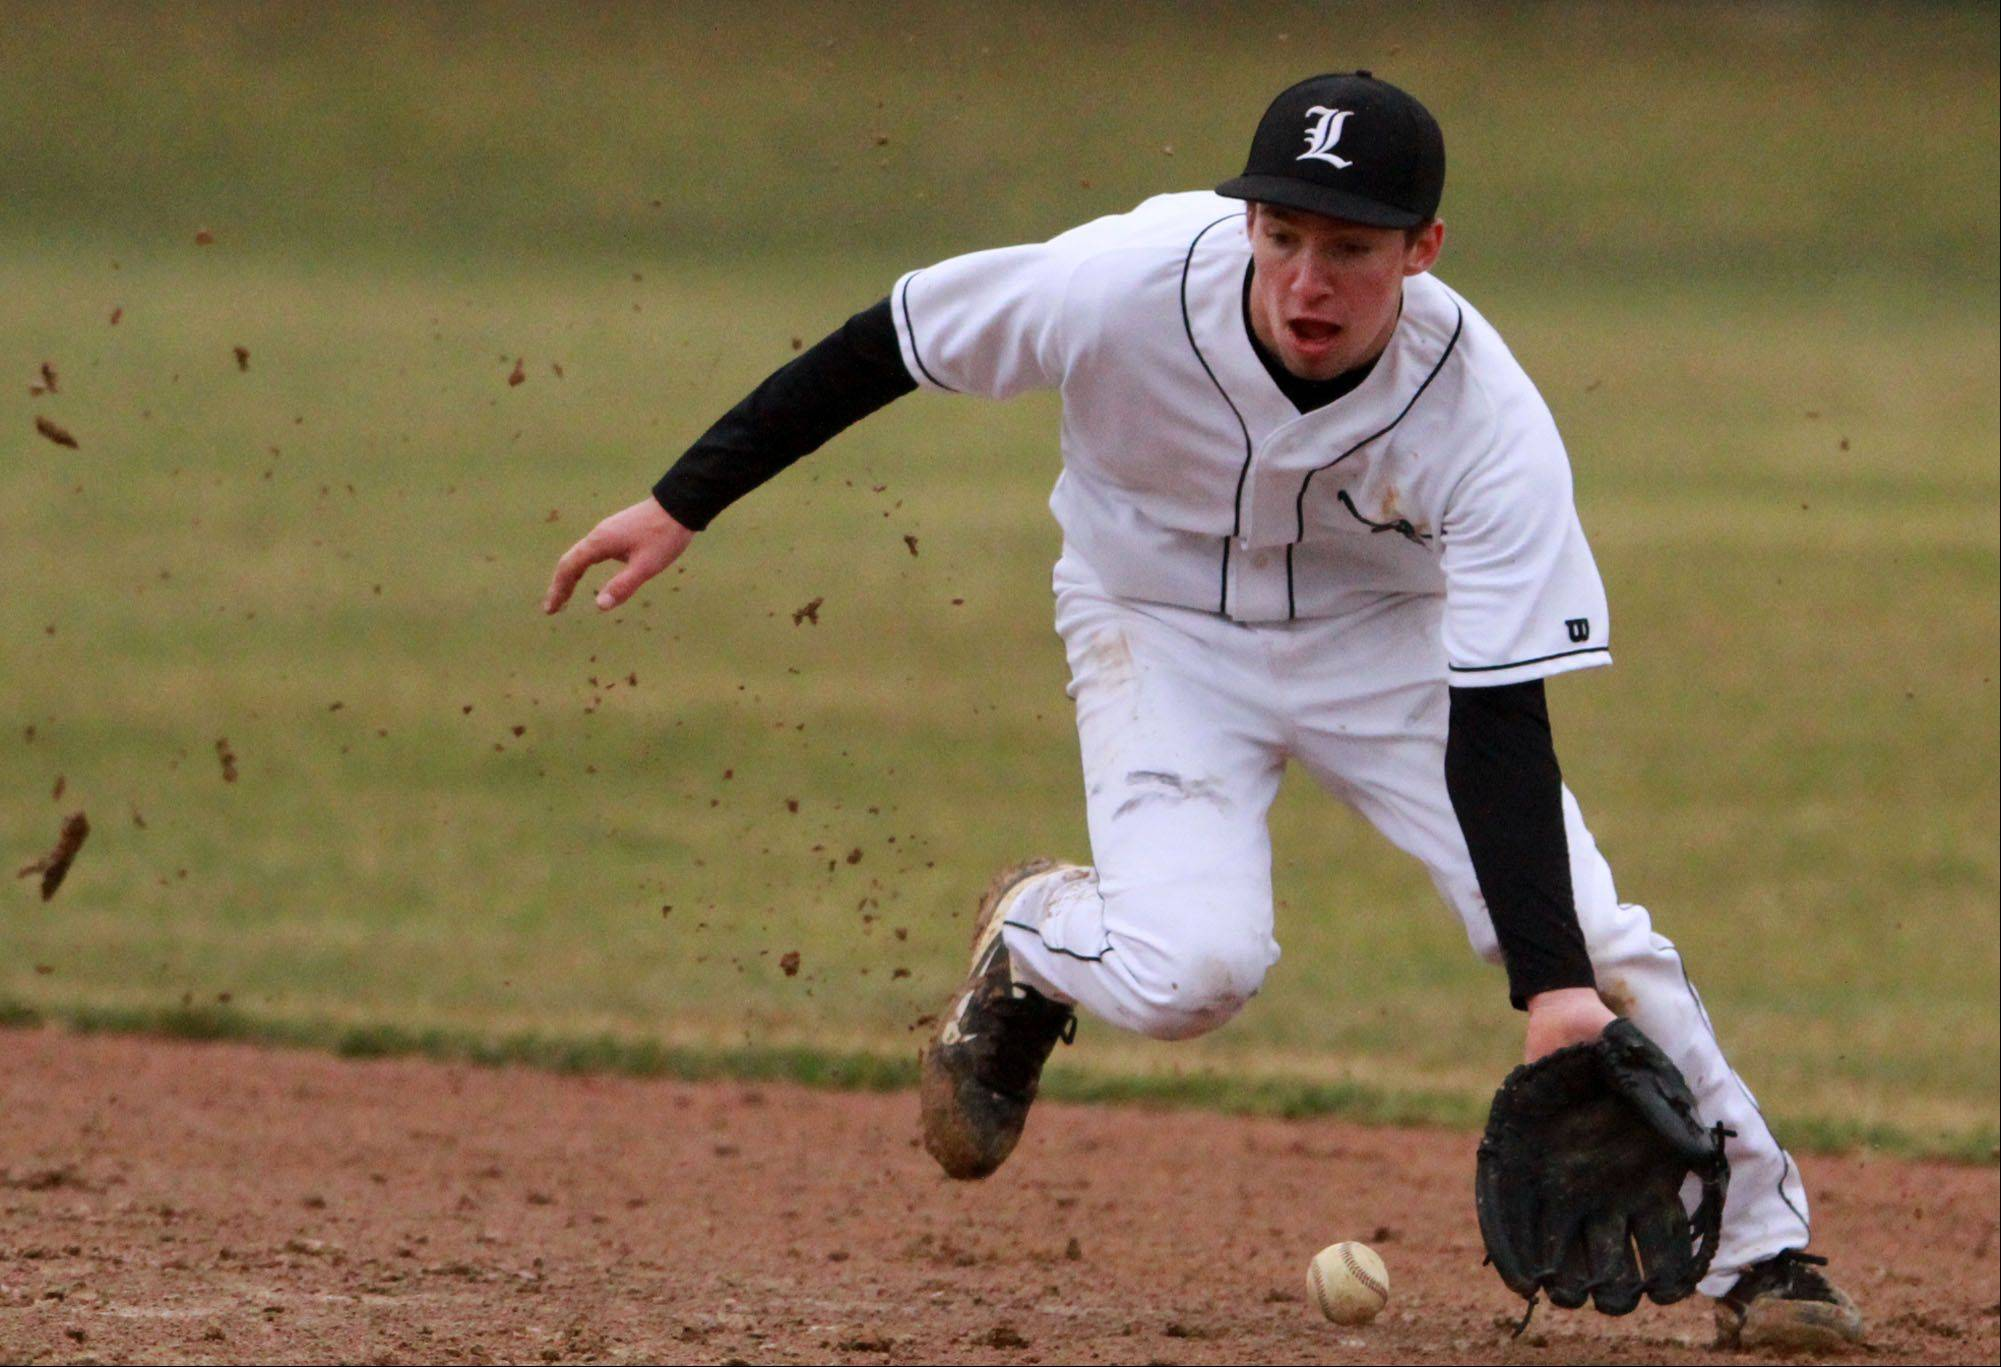 Libertyville shortstop Jimmy Govern scoops up a grounder against Antioch Friday in Libertyville.